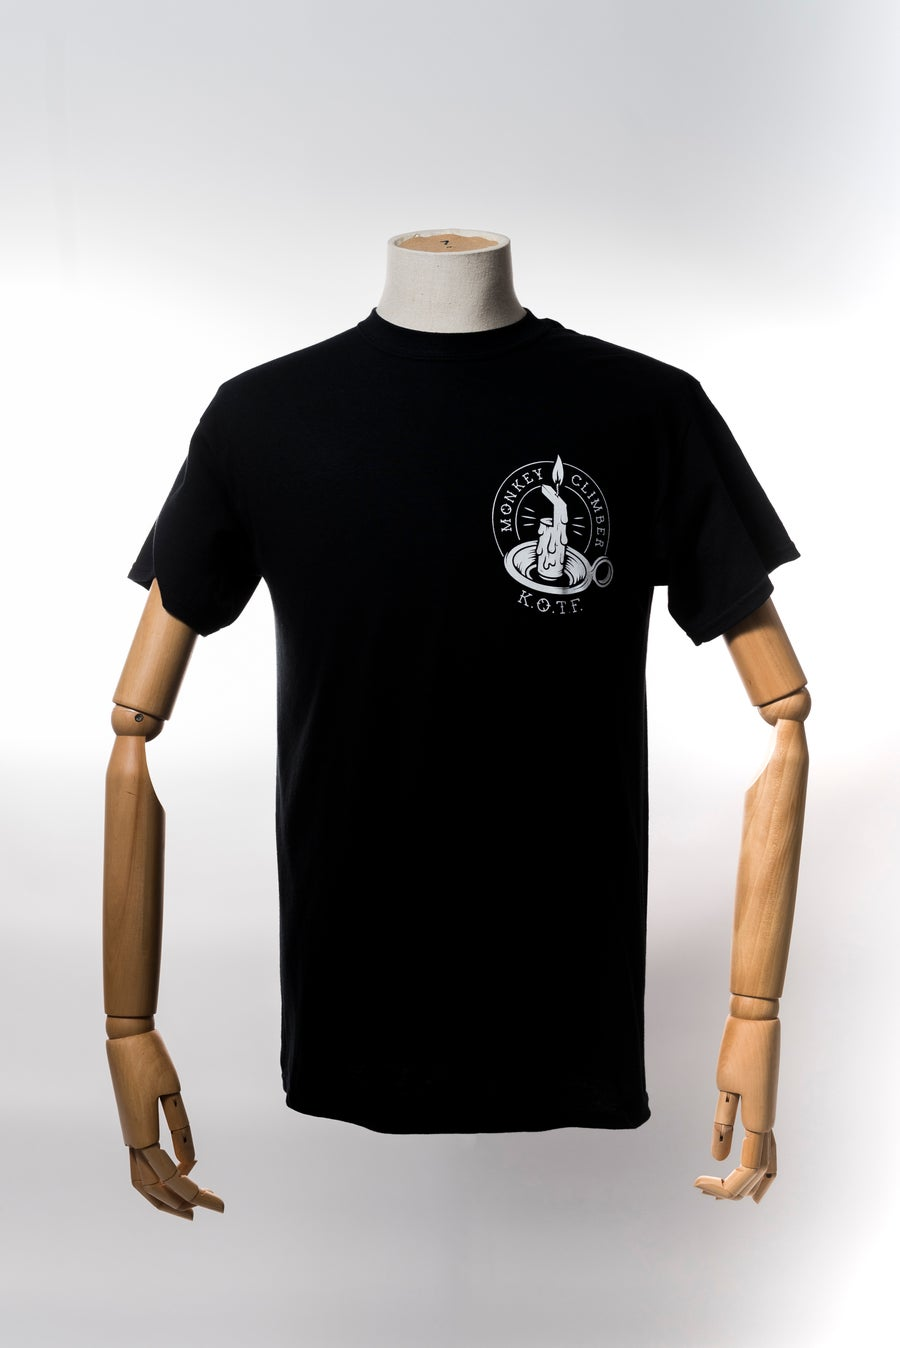 Image of Monkey Climber Keepers of the Faith shirt I Black - Burgundy - Grey